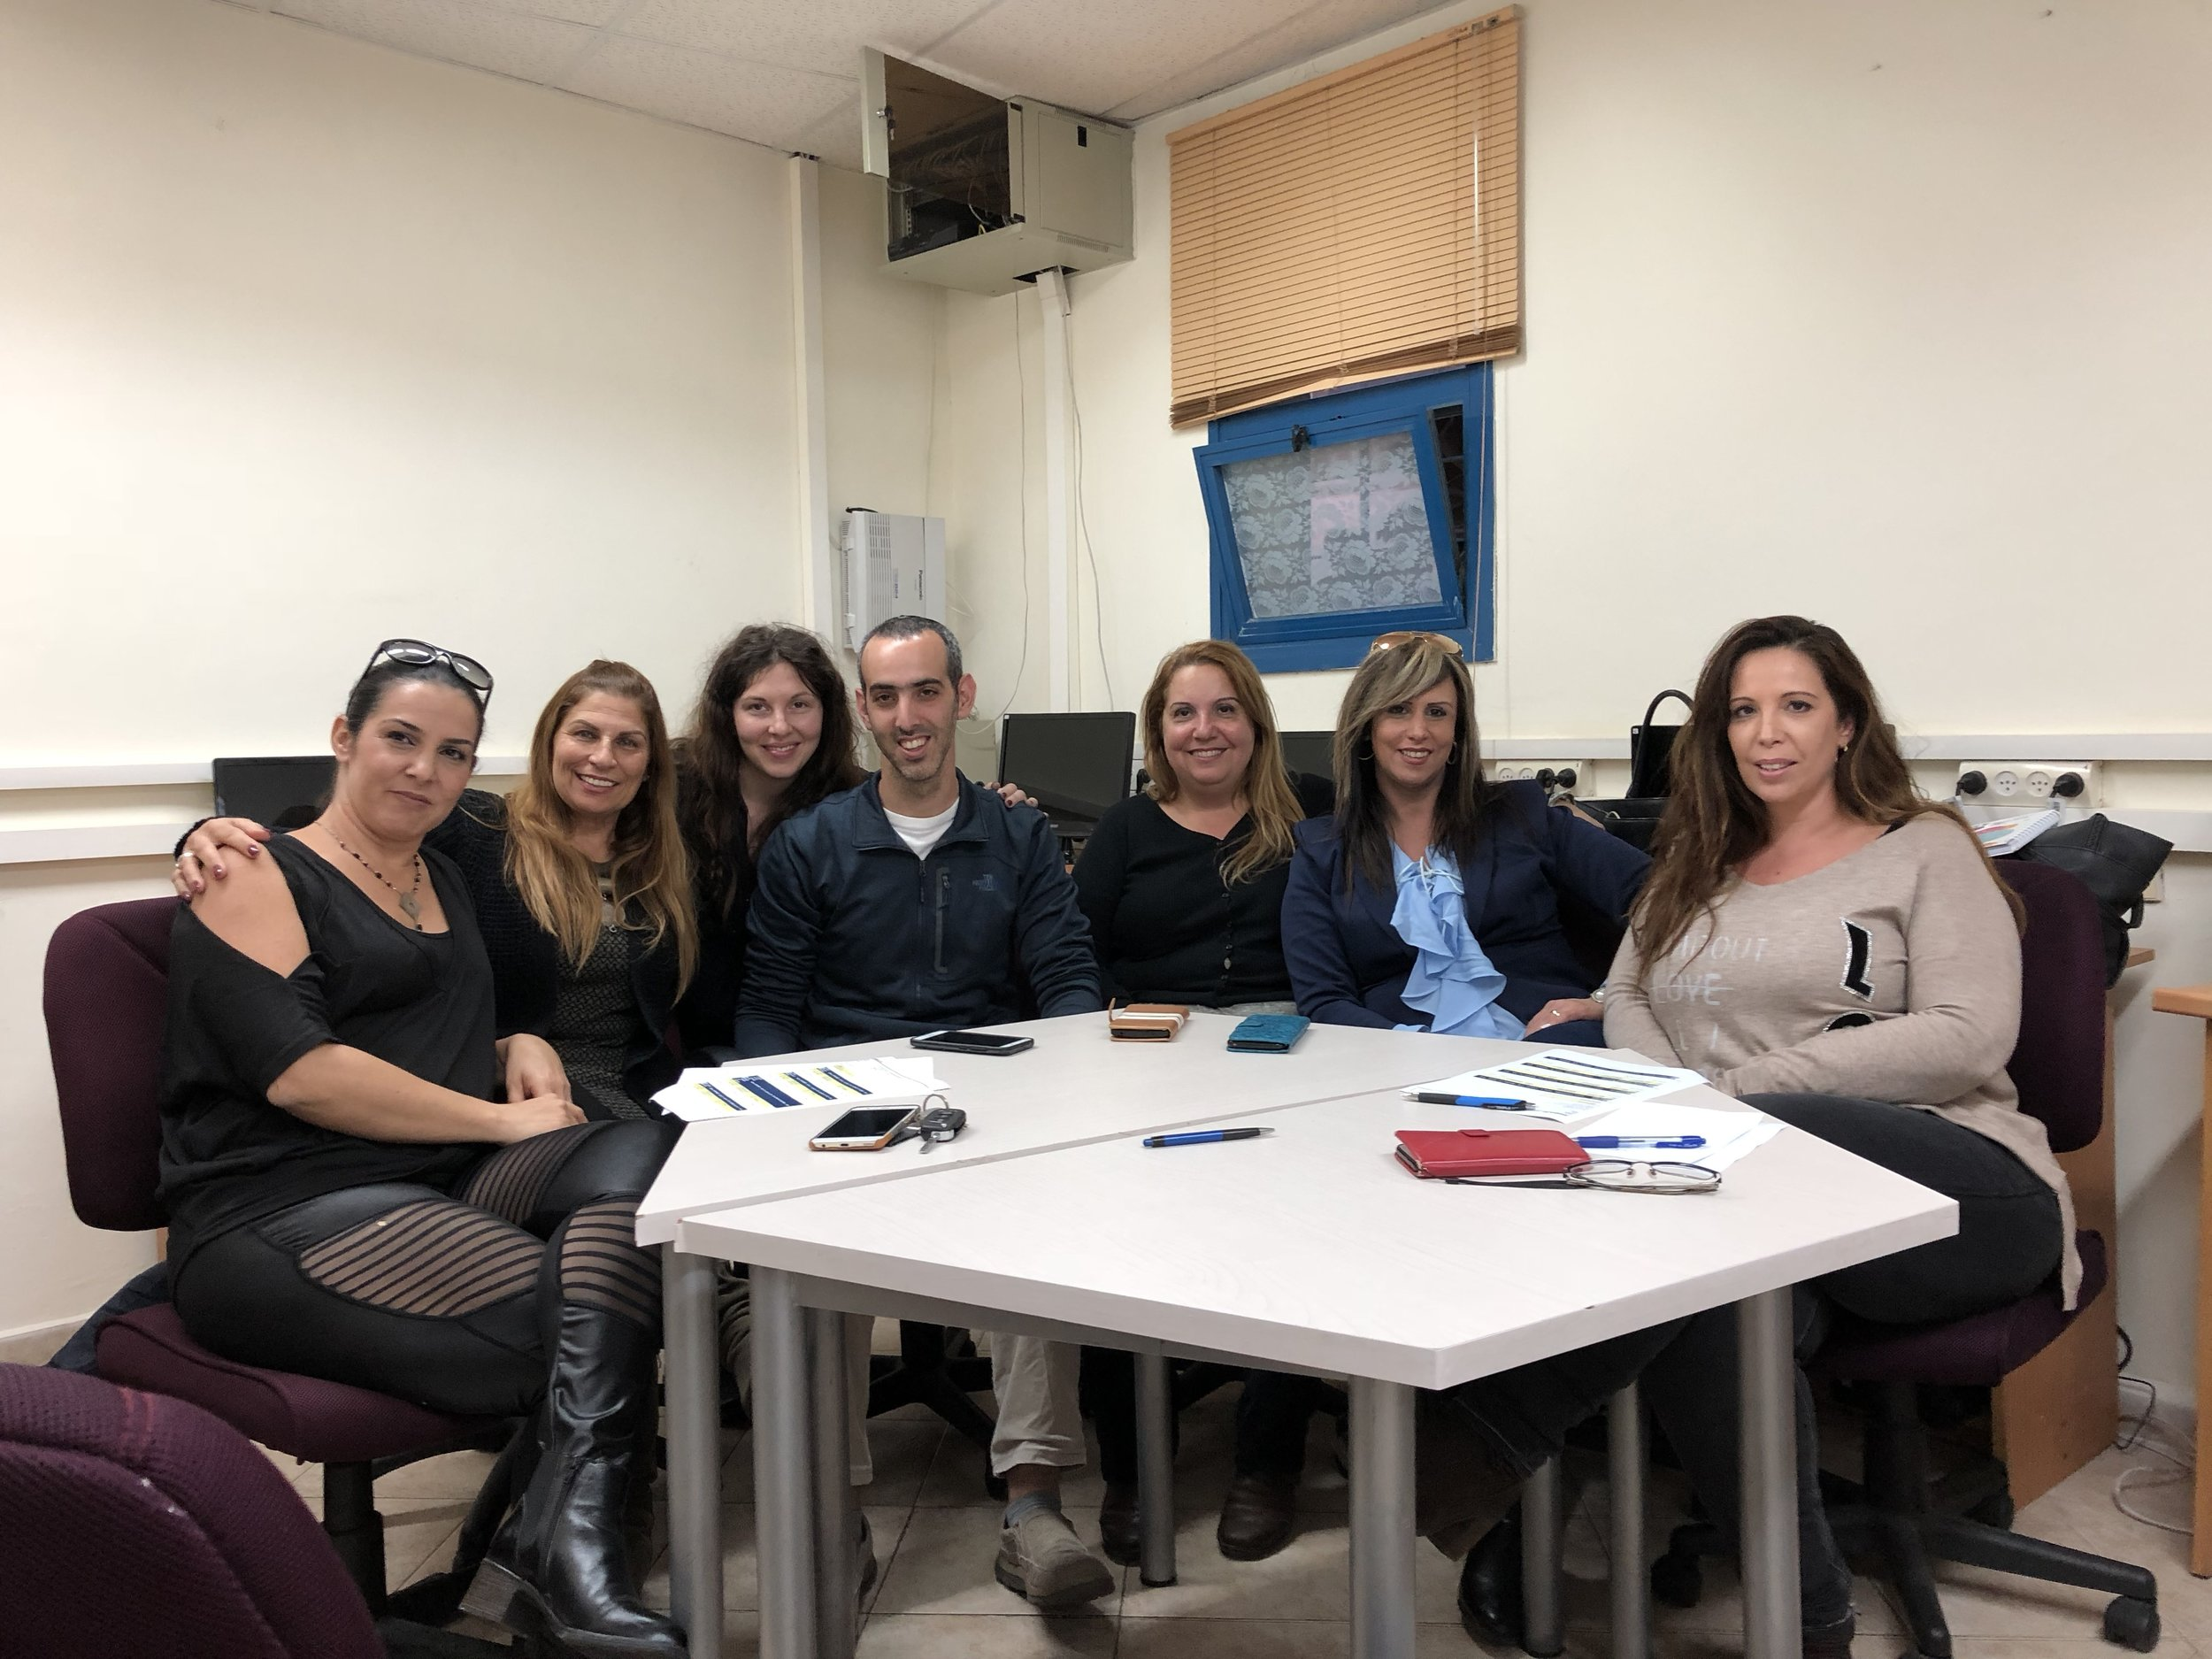 Shalom Austin Communications Director, Wendy Goodman with P2G educators in Akko, Israel. Photo credit: Daniel Perry